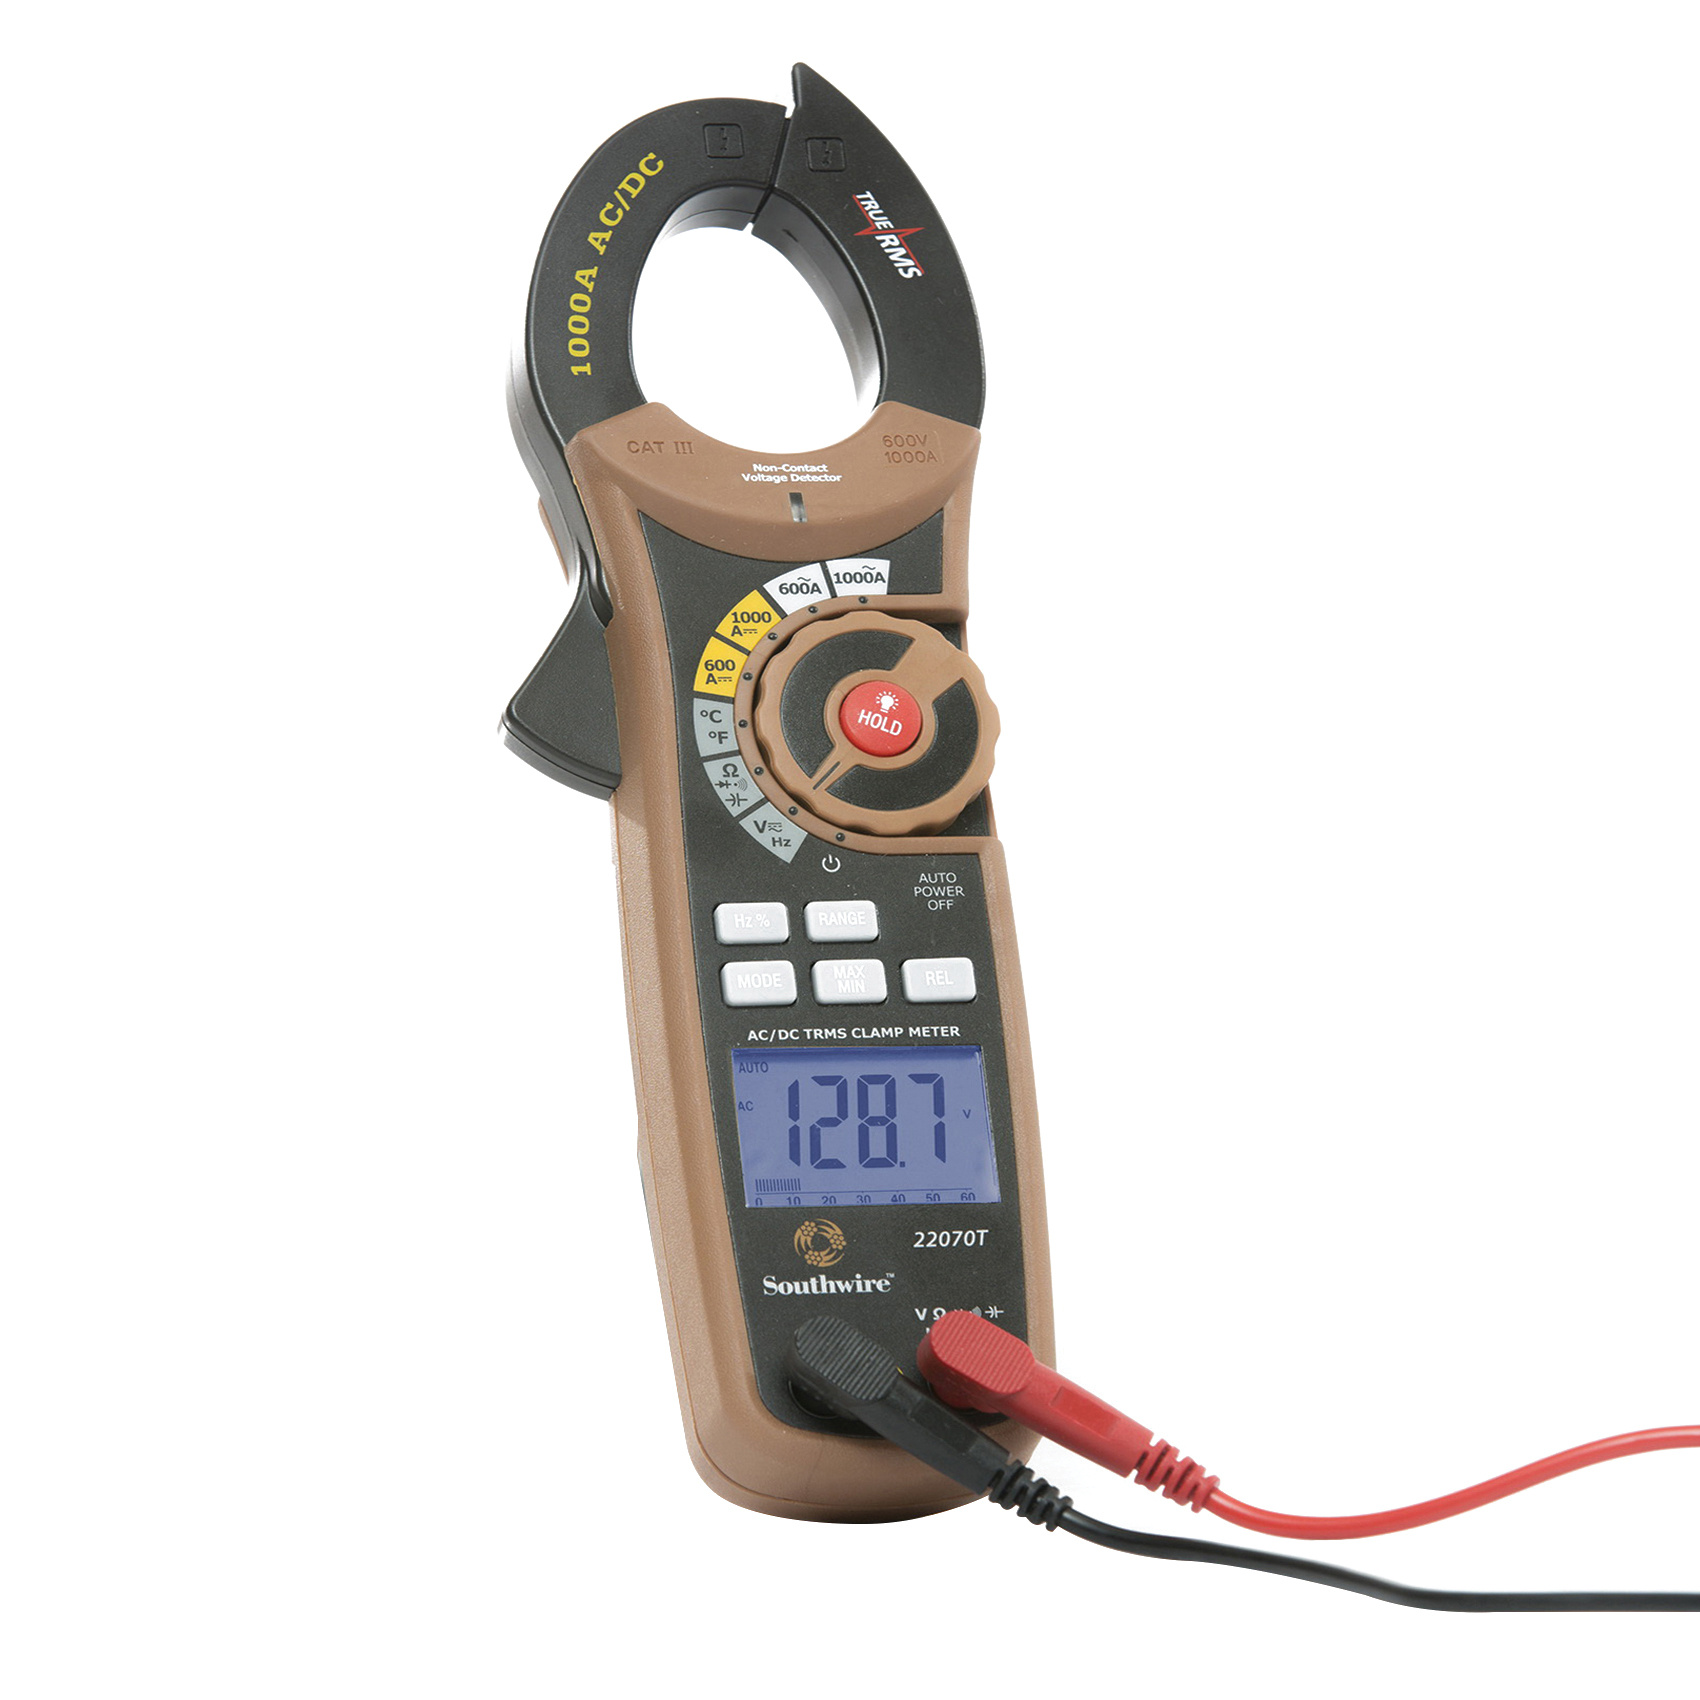 Southwire 22070T True RMS AC/DC Clamp Meter 1-1/2 Inch Jaw - Clamp ...